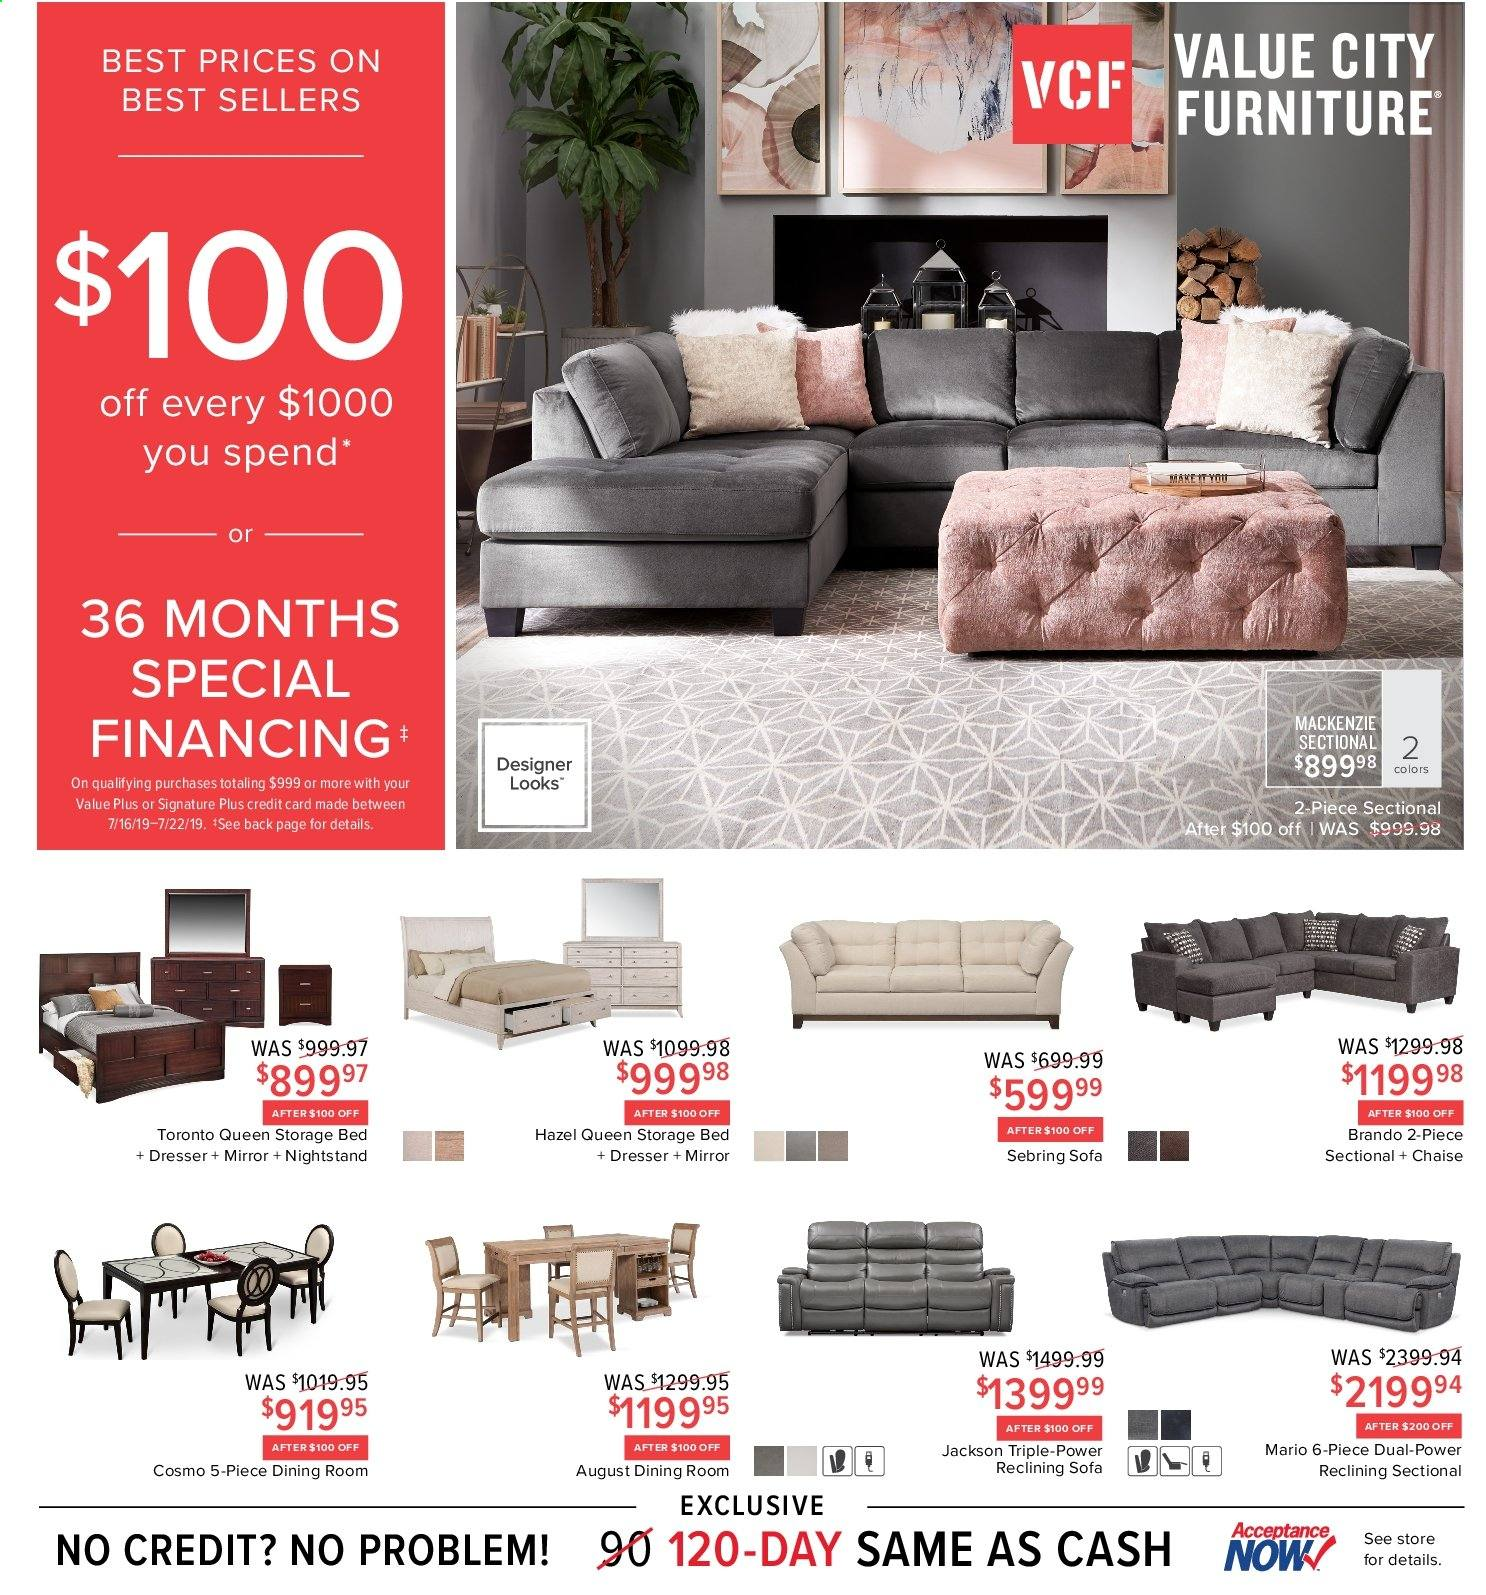 Value City Furniture Flyer  - 07.16.2019 - 07.22.2019. Page 1.